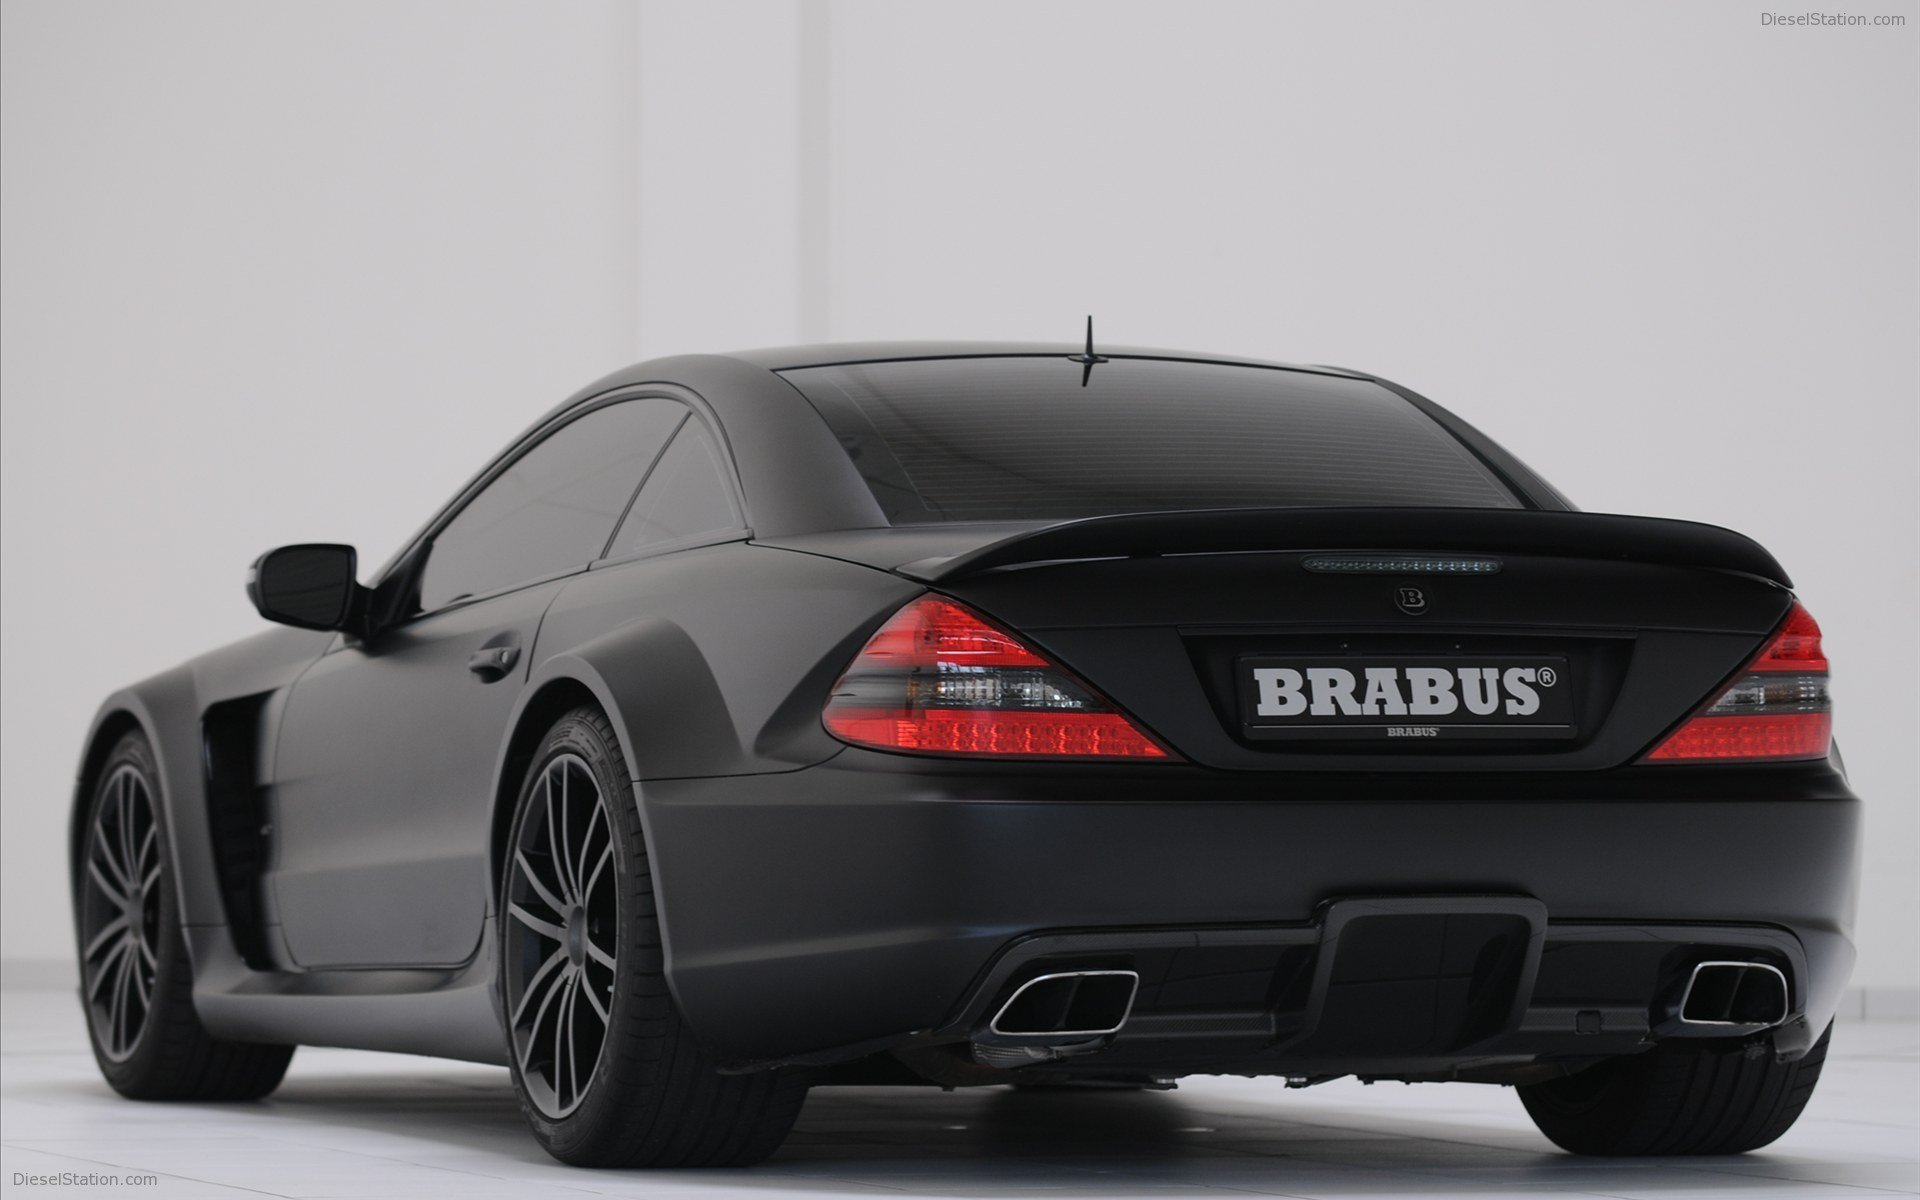 Latest Brabus Mercedes Benz Sl 65 Amg Black Series Widescreen Free Download Original 1024 x 768